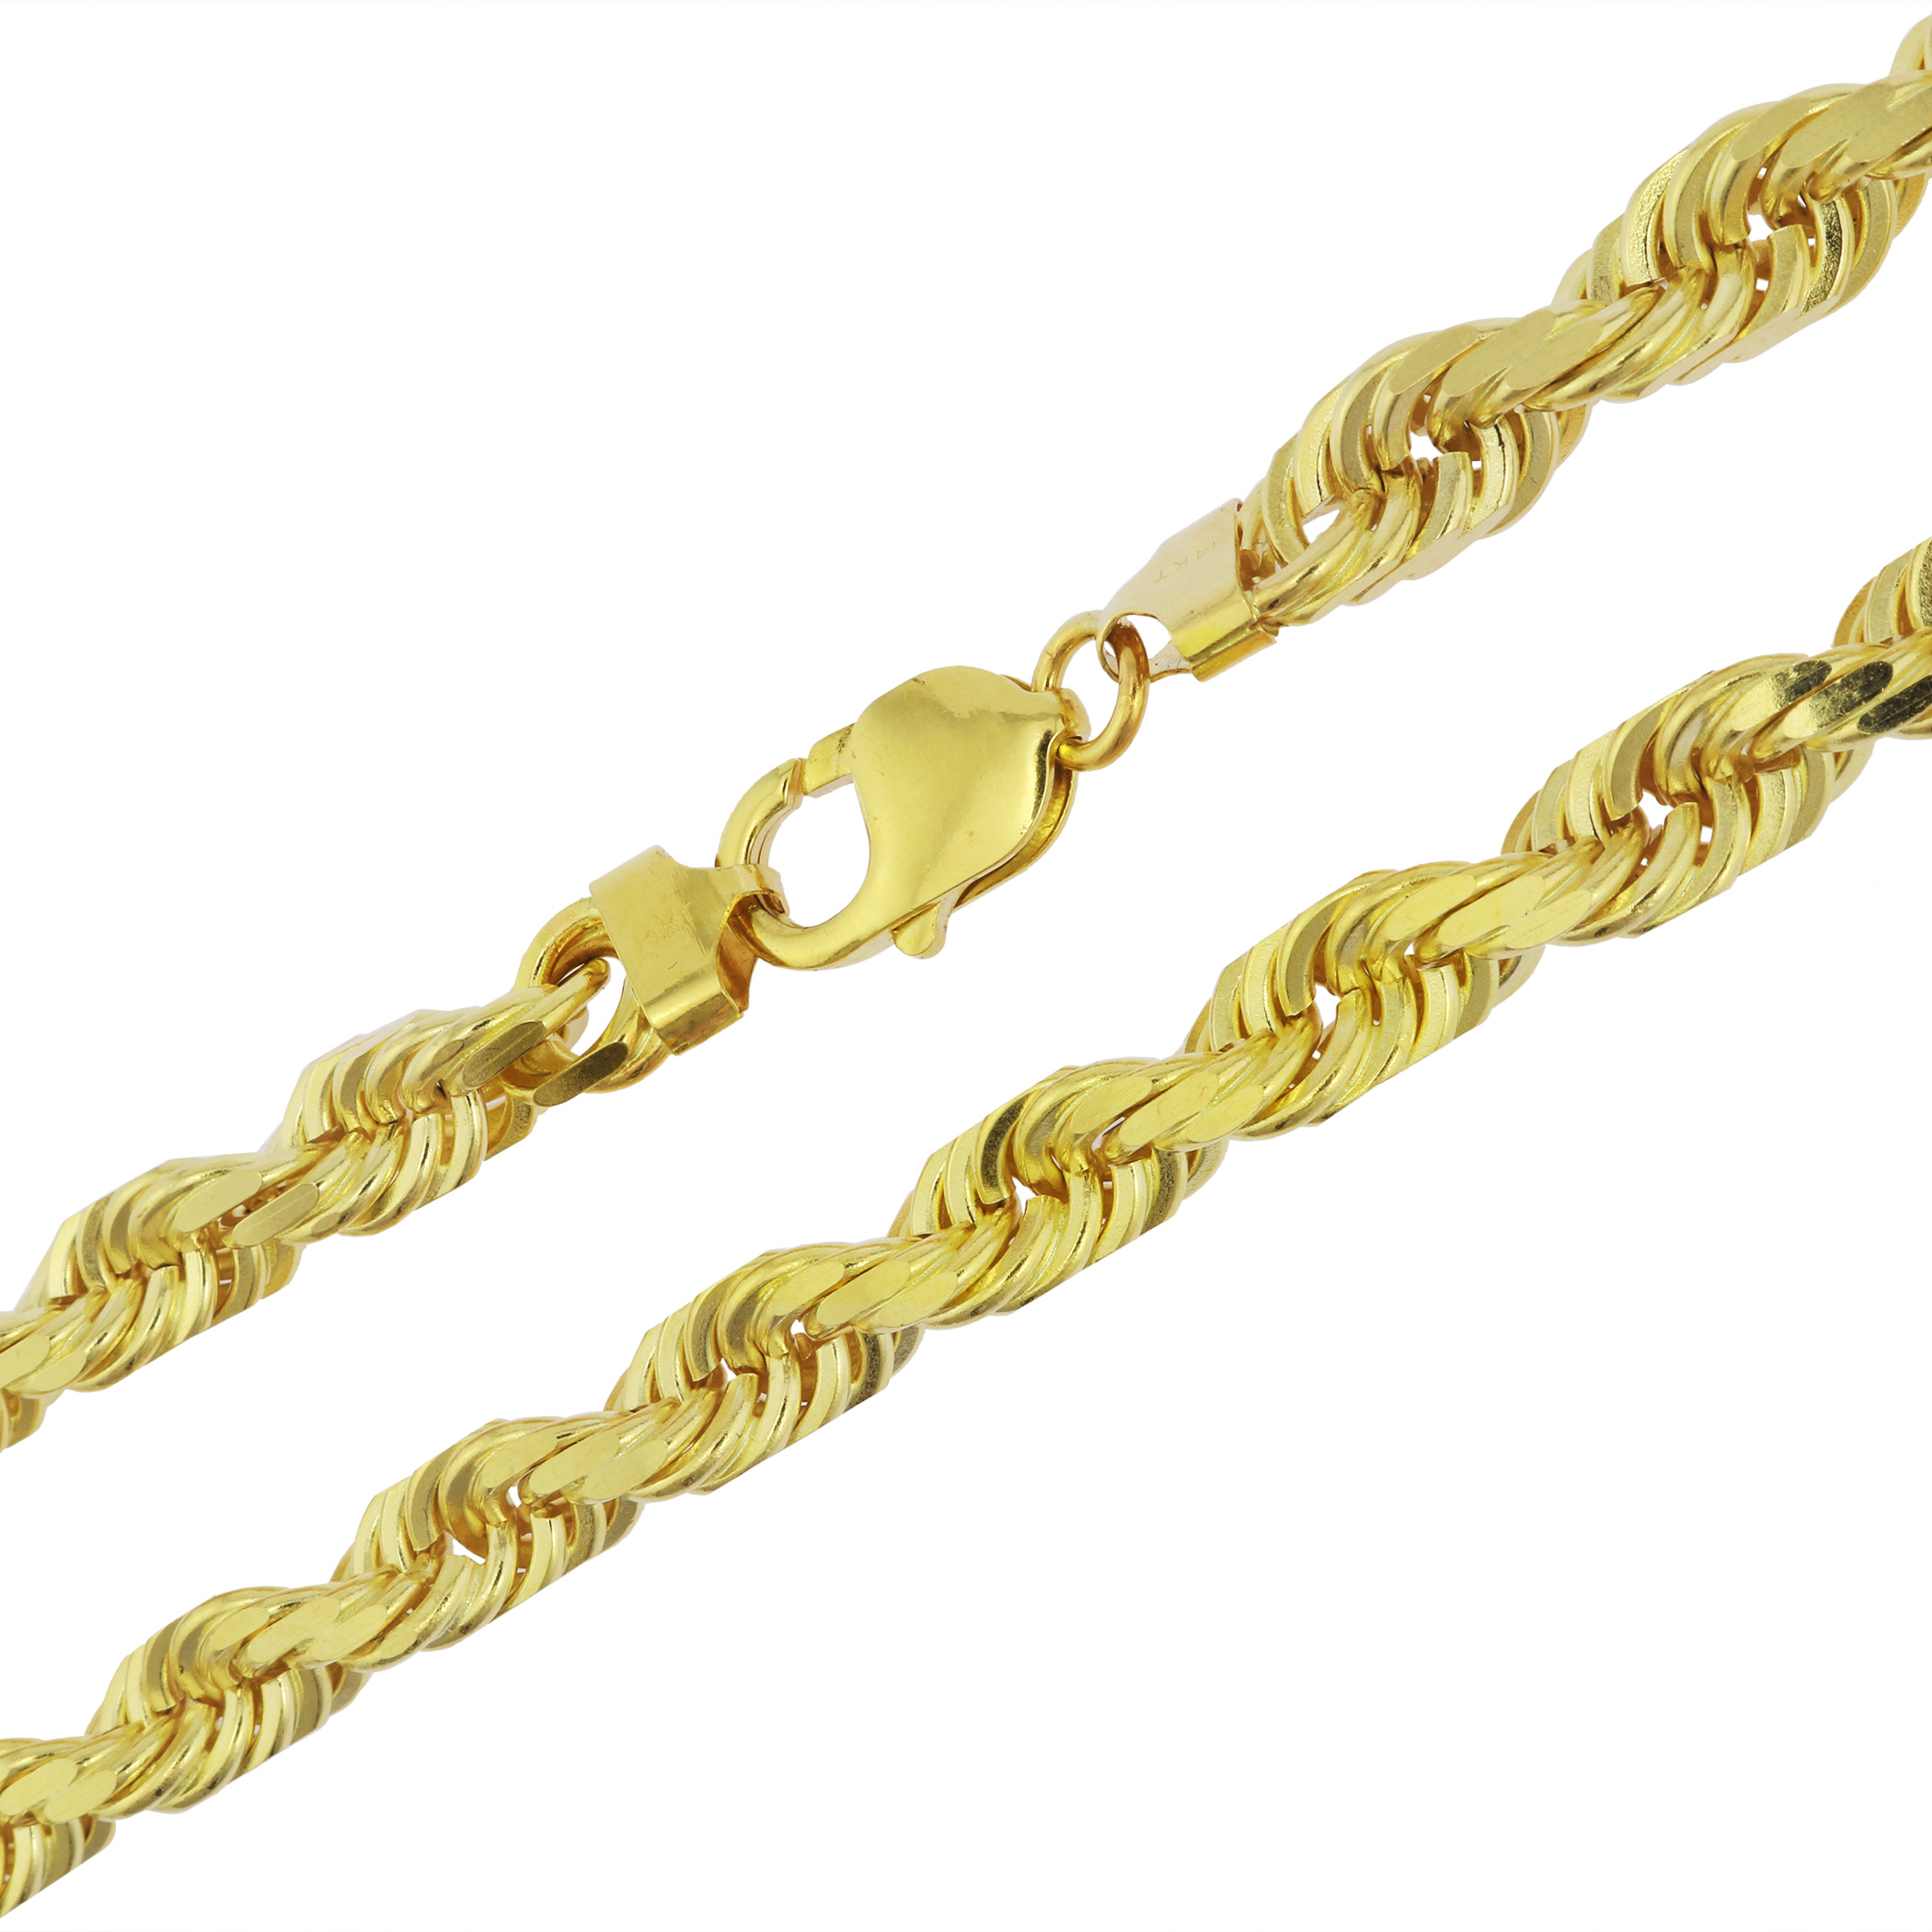 Italian Gold Chain >> Details About 14k Solid Yellow Gold 8mm Mens Heavy Thick Italian Rope Chain Necklace 24 30